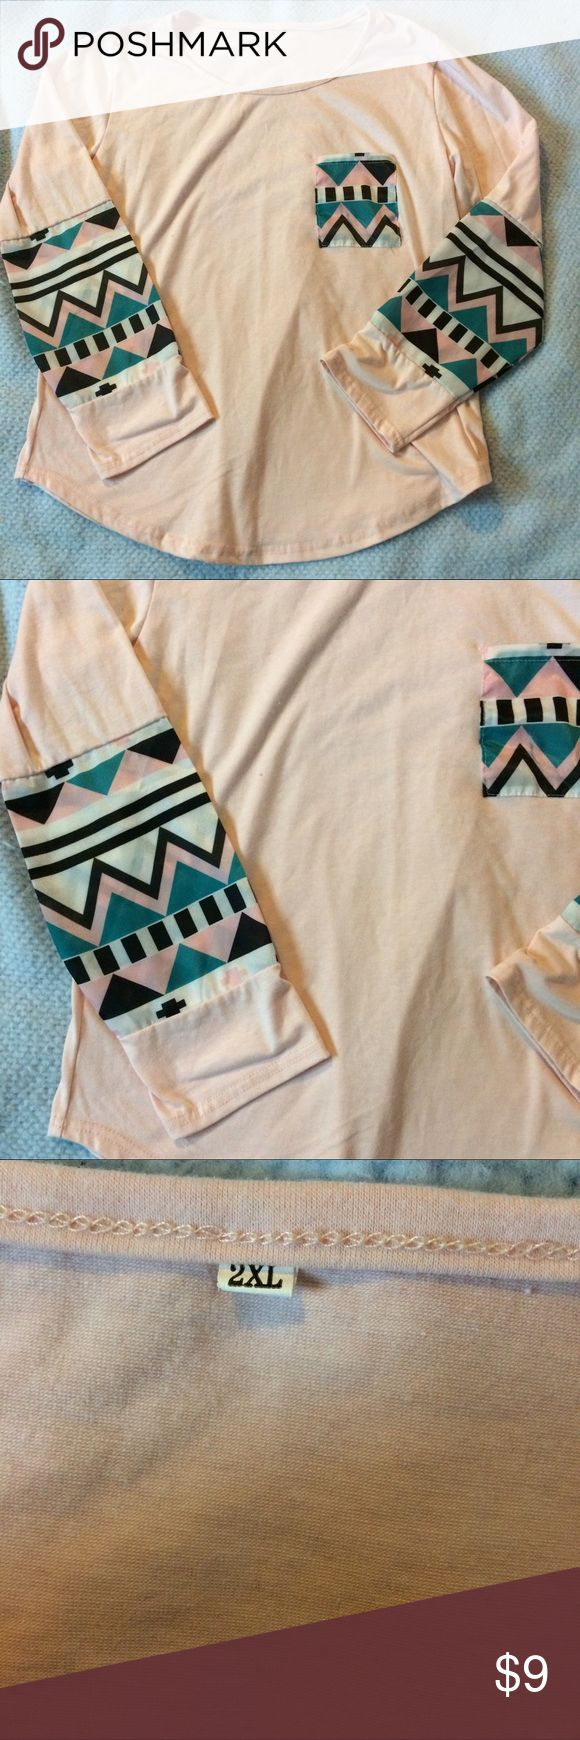 Long sleeve chevron pocket Tee Beautiful light pink color with Chevron print around the elbows and on the pocket. Size 2Xl but fits more like an extra large Tops Blouses